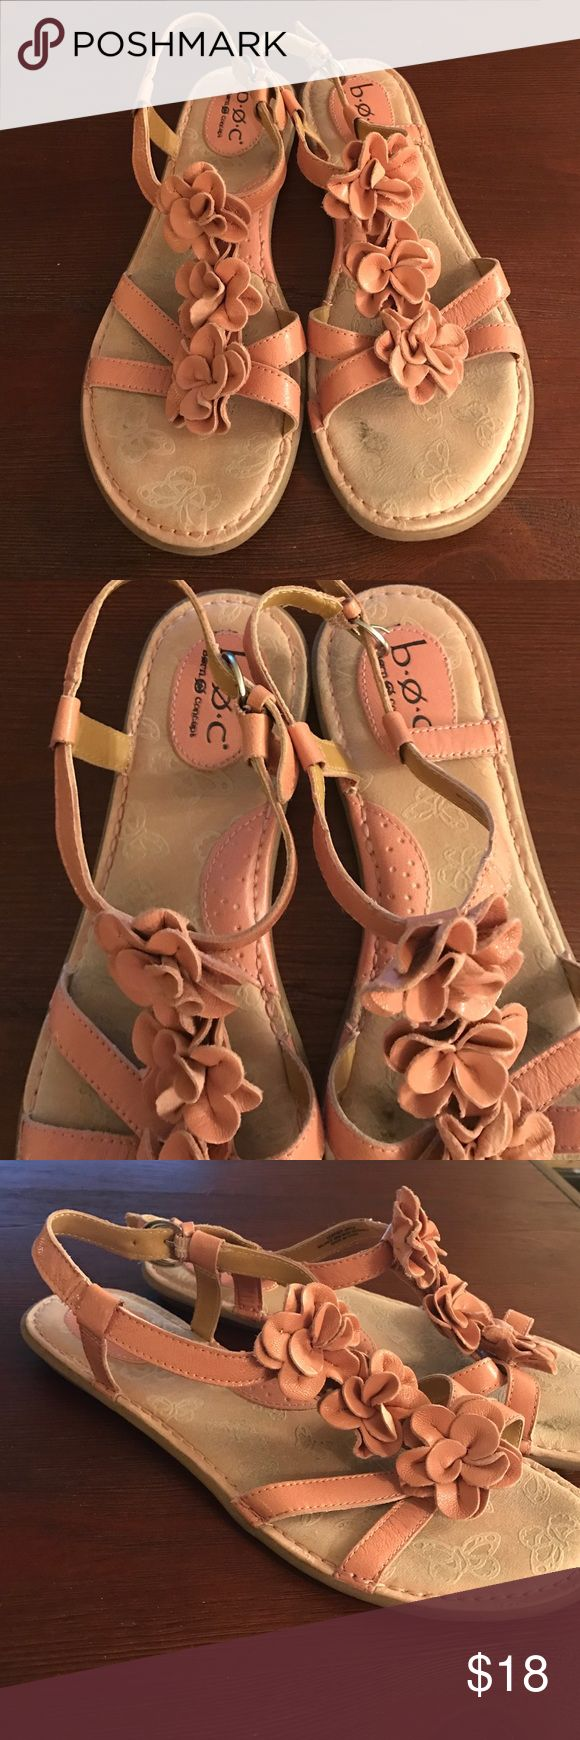 BOC Leather Sandals BOC Pink flower flat sandals. These have arch support and a tiny heel (around 1/2 inch) for extra comfort. These show a little wear but are still in very good condition. Born Shoes Sandals